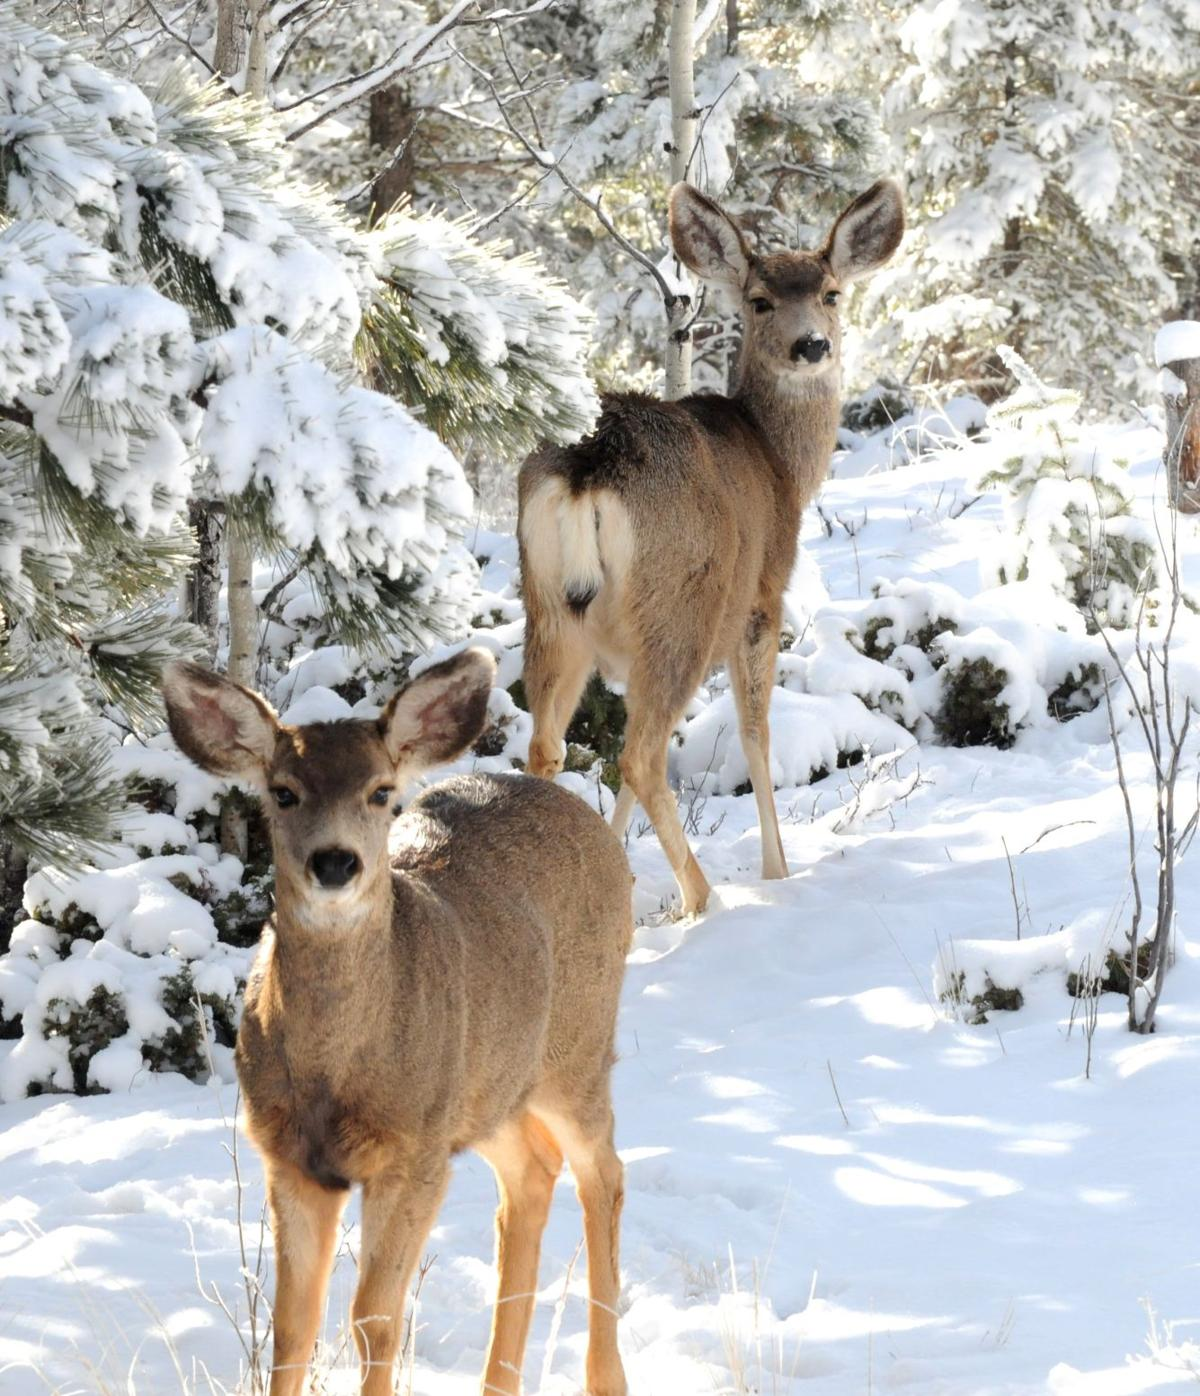 The Colorado hills are alive with wildlife